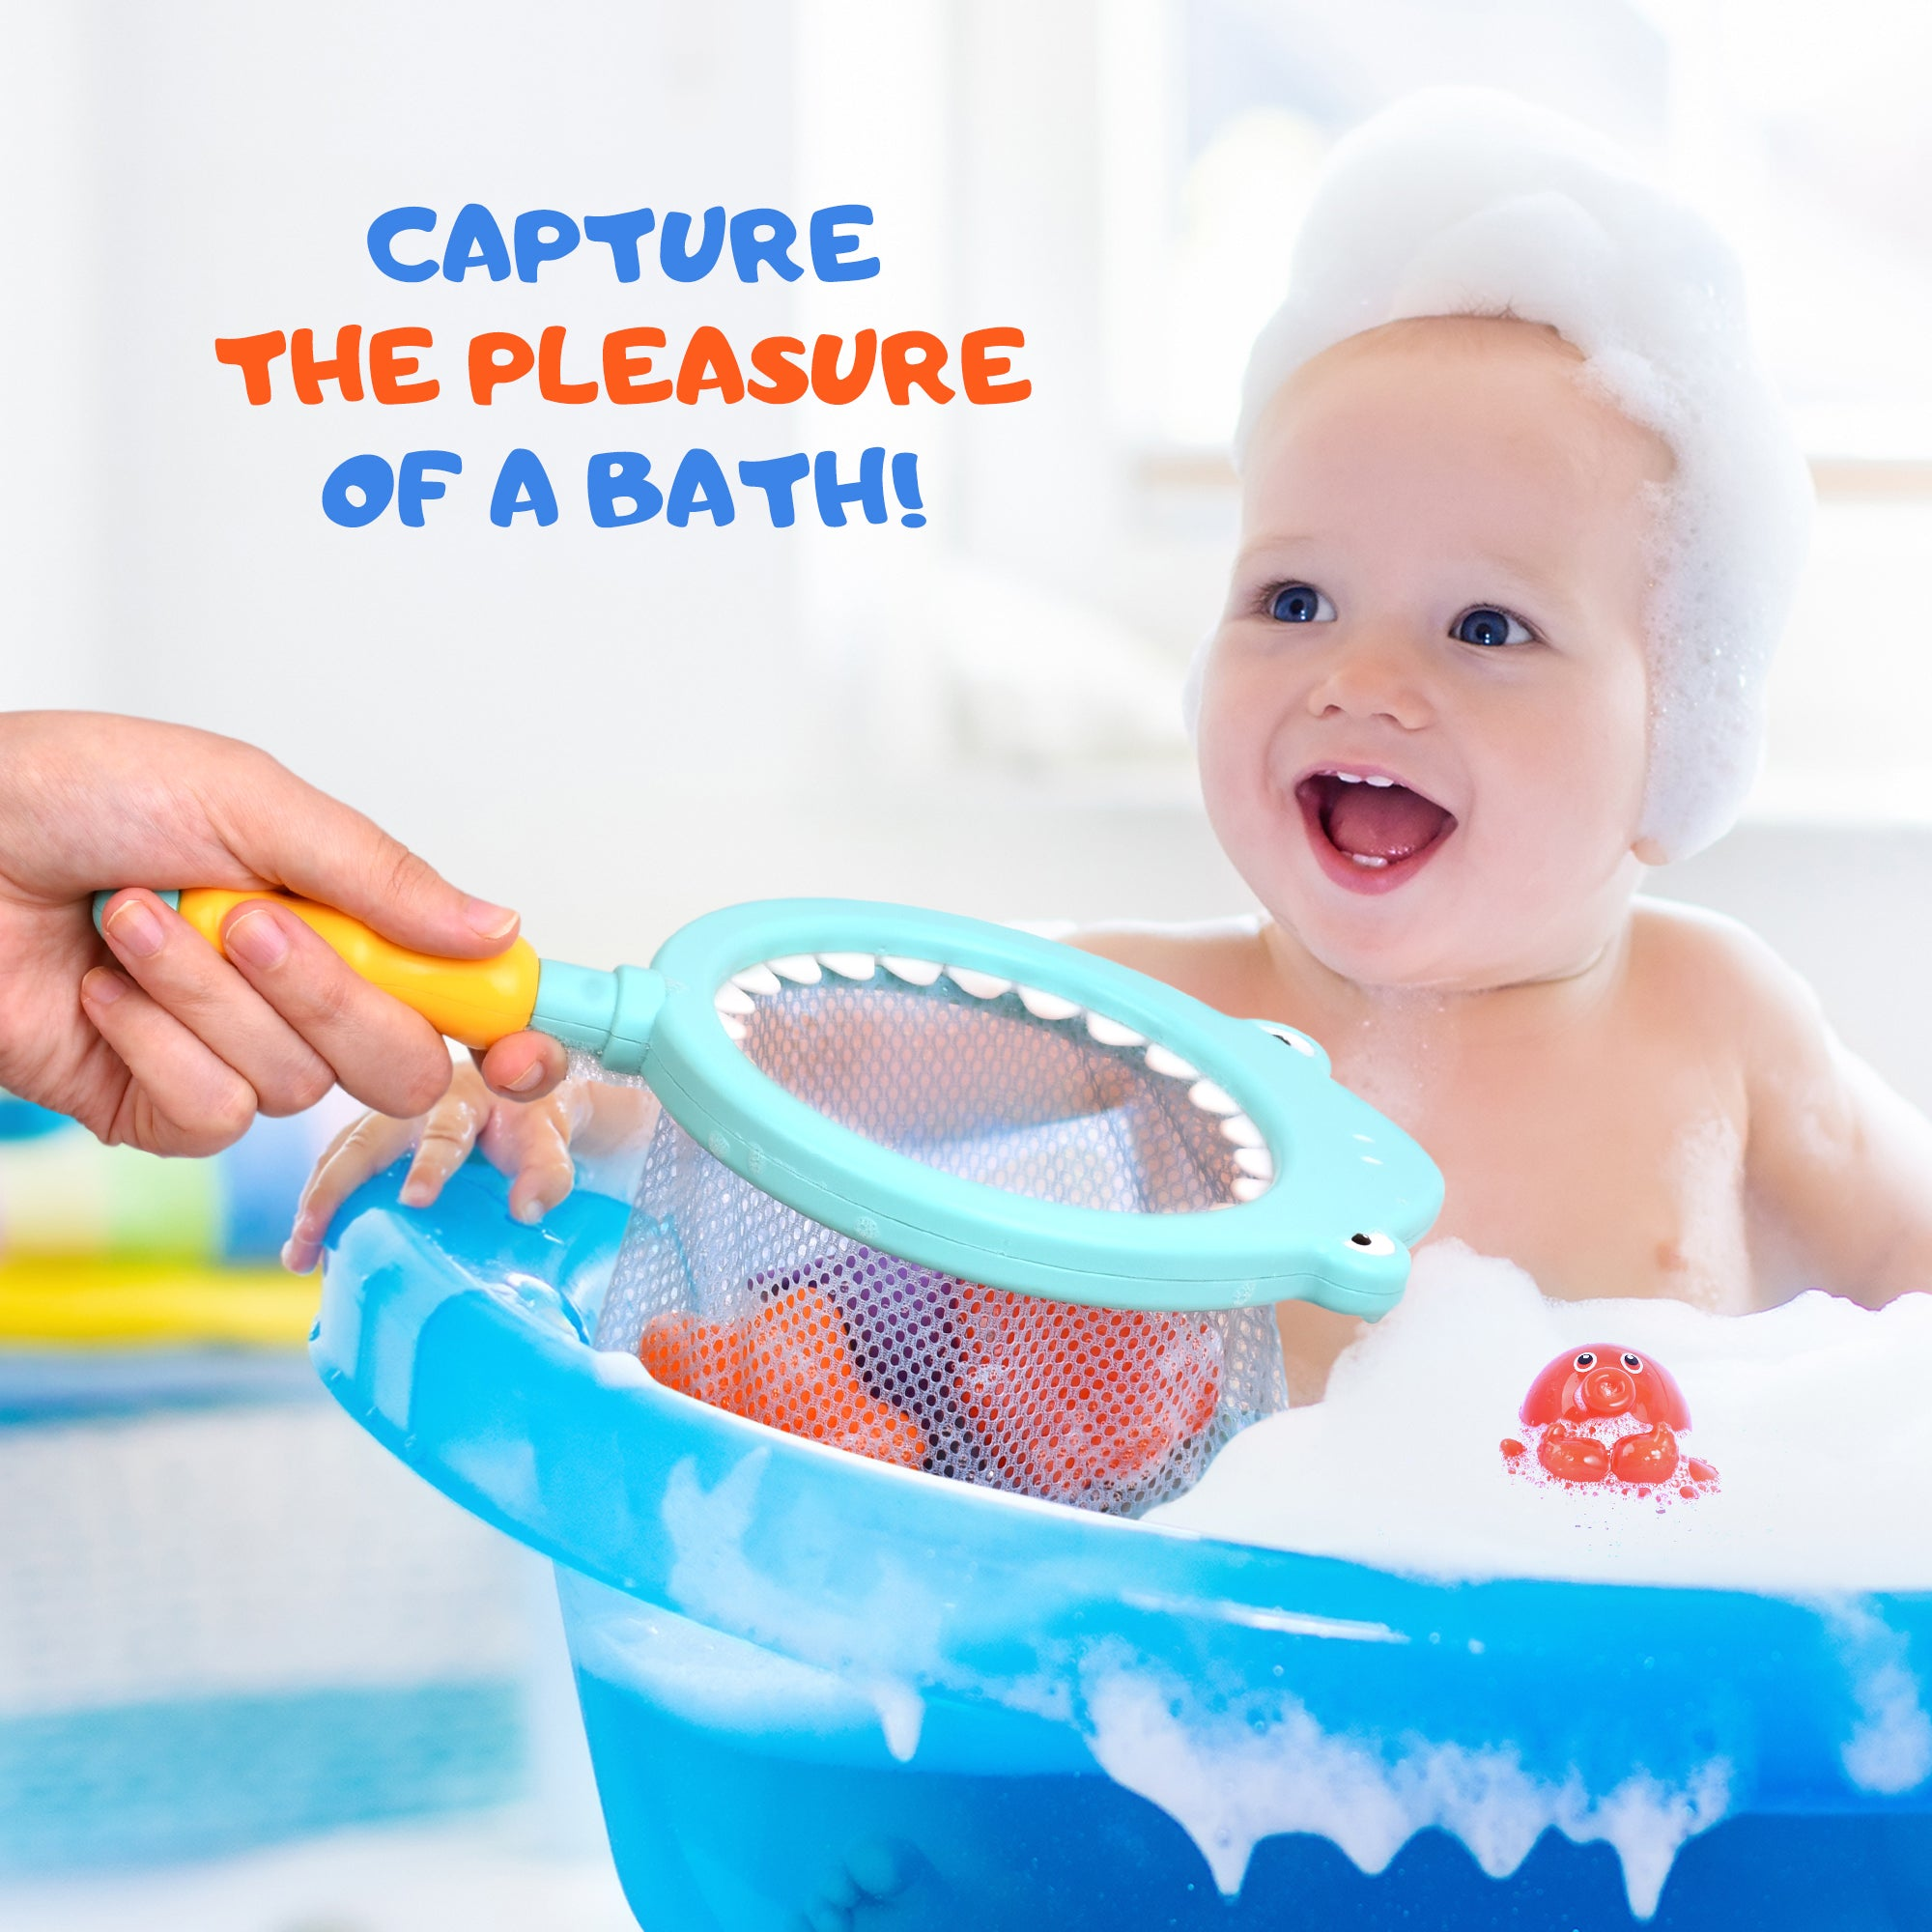 Bath Toy with Fishing Net, Floating Animals, Catch Shark Net Game, Bathtub Fishing Play Set for Babies and Kids